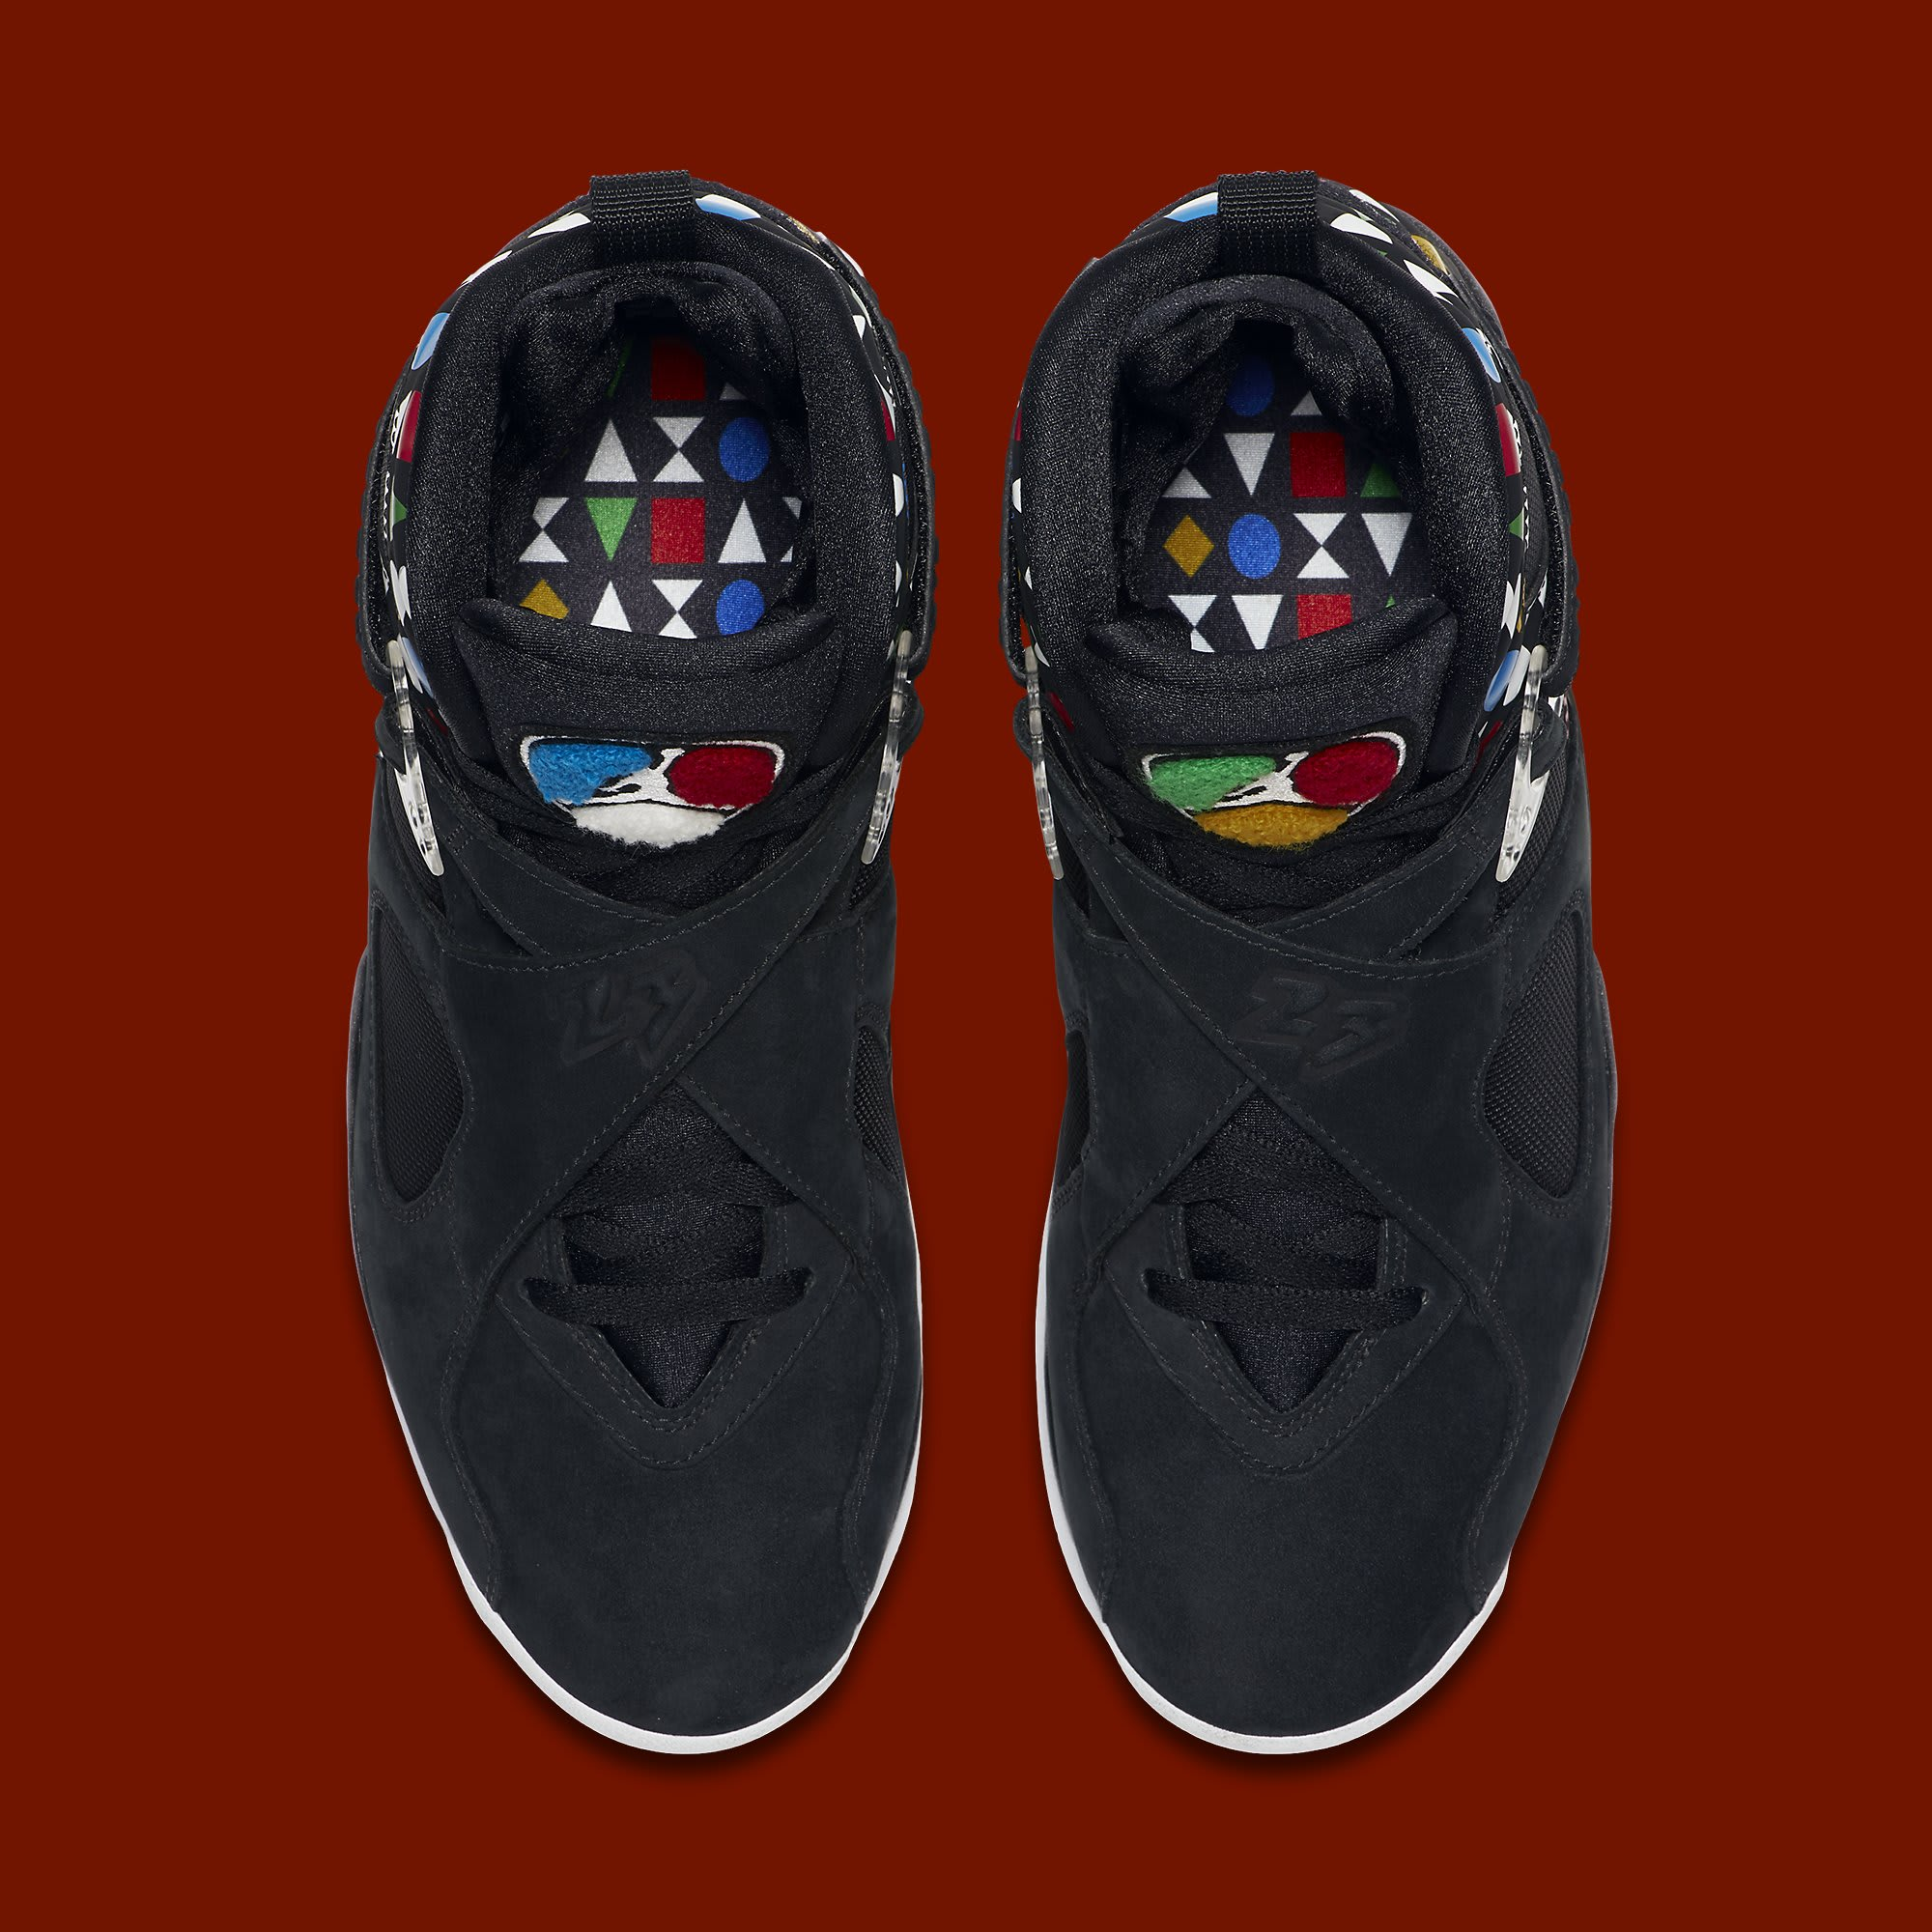 Air Jordan 8 Retro 'Quai 54' CJ9218-001 Top